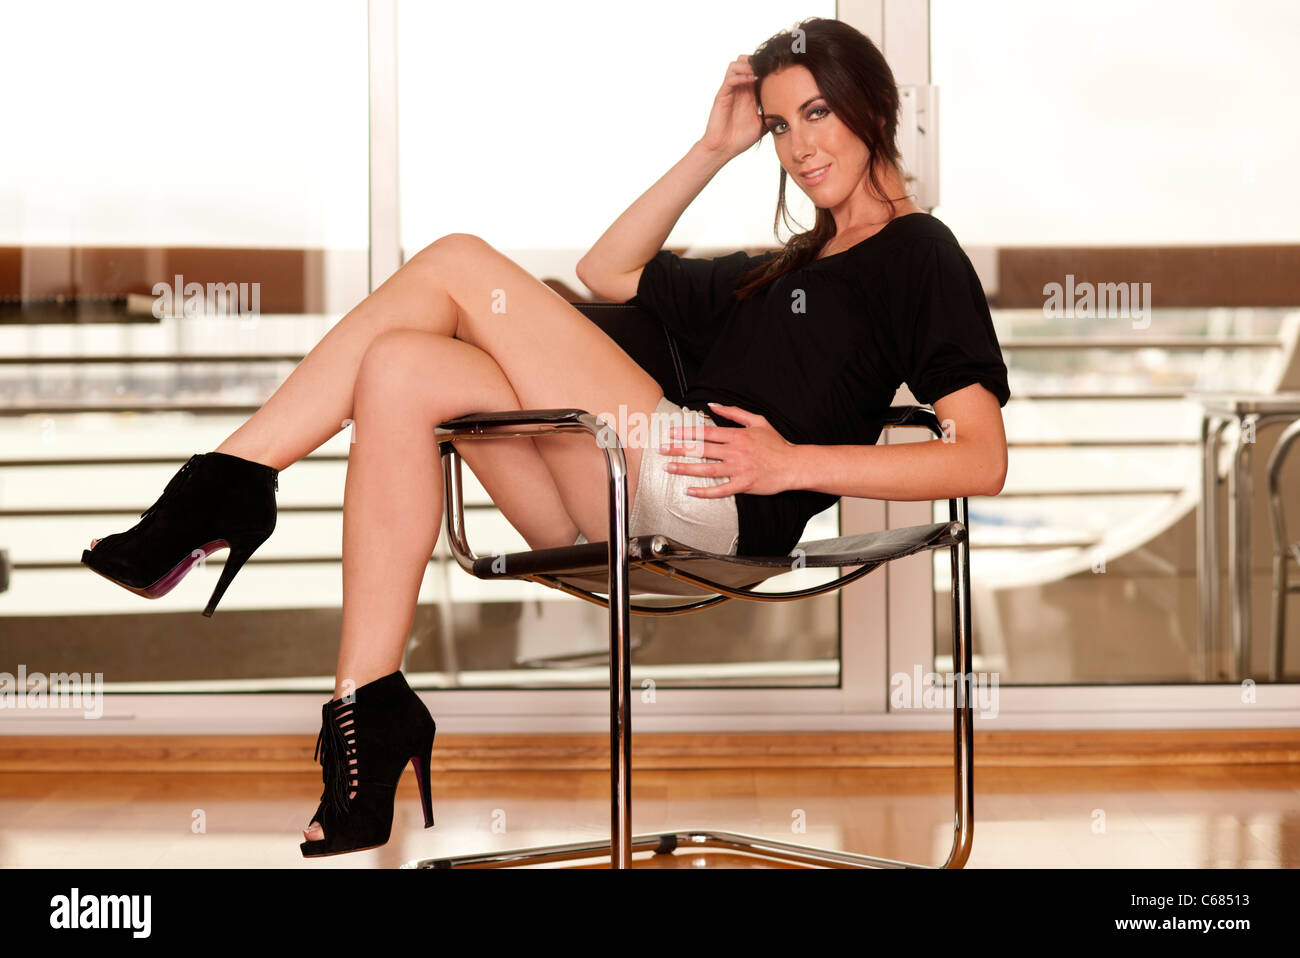 woman sitting on a chair with legs crossed , sexy with high heeled